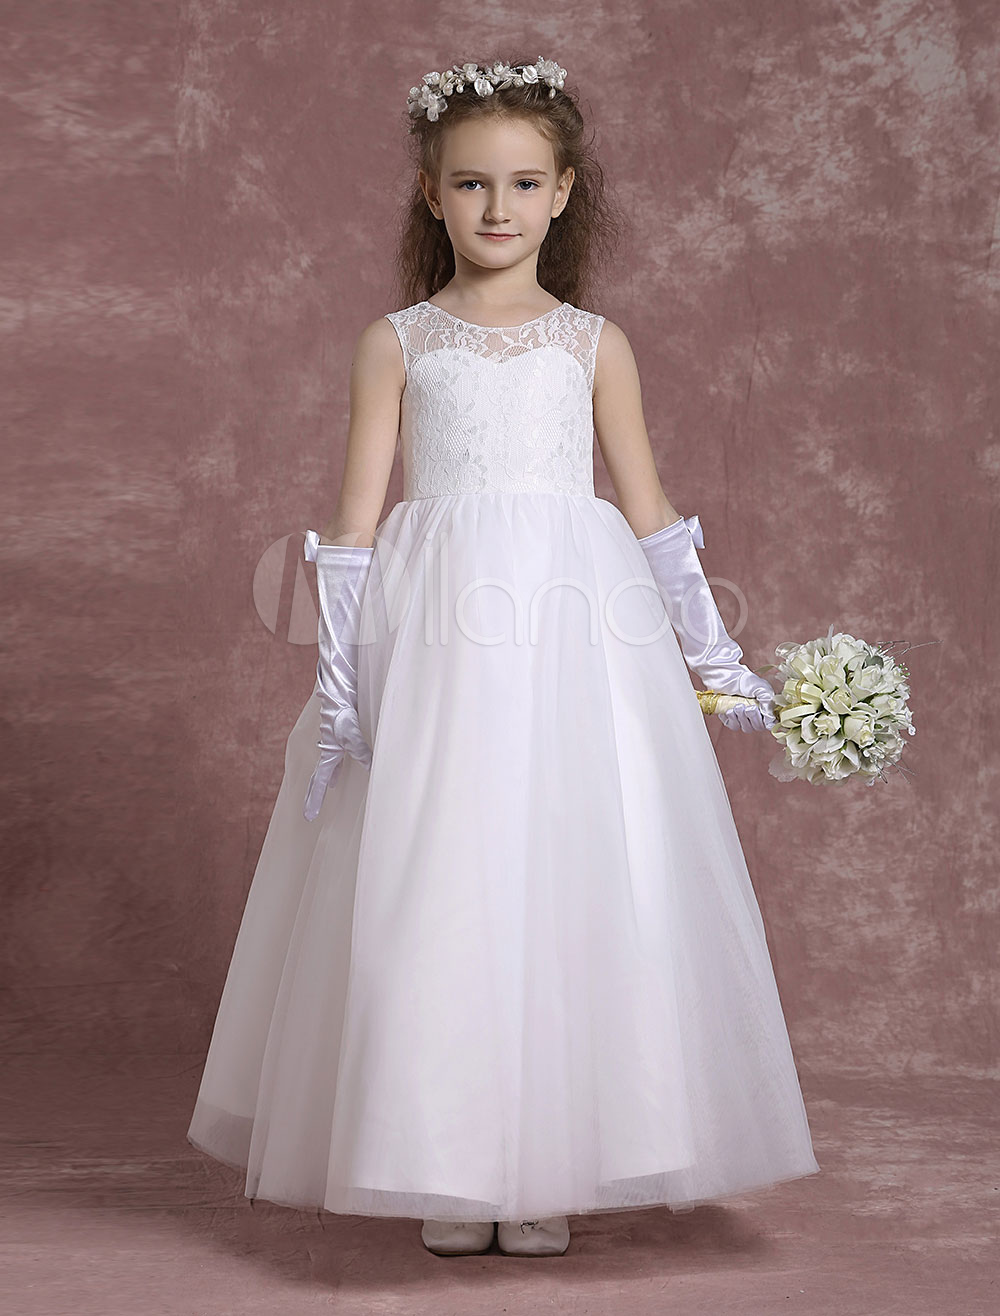 Buy Tulle Flower Girl Dresses A Line Pageant Dresses Toddler's Ankle Length Sleeveless Formal Dresses With Zipper for $71.09 in Milanoo store